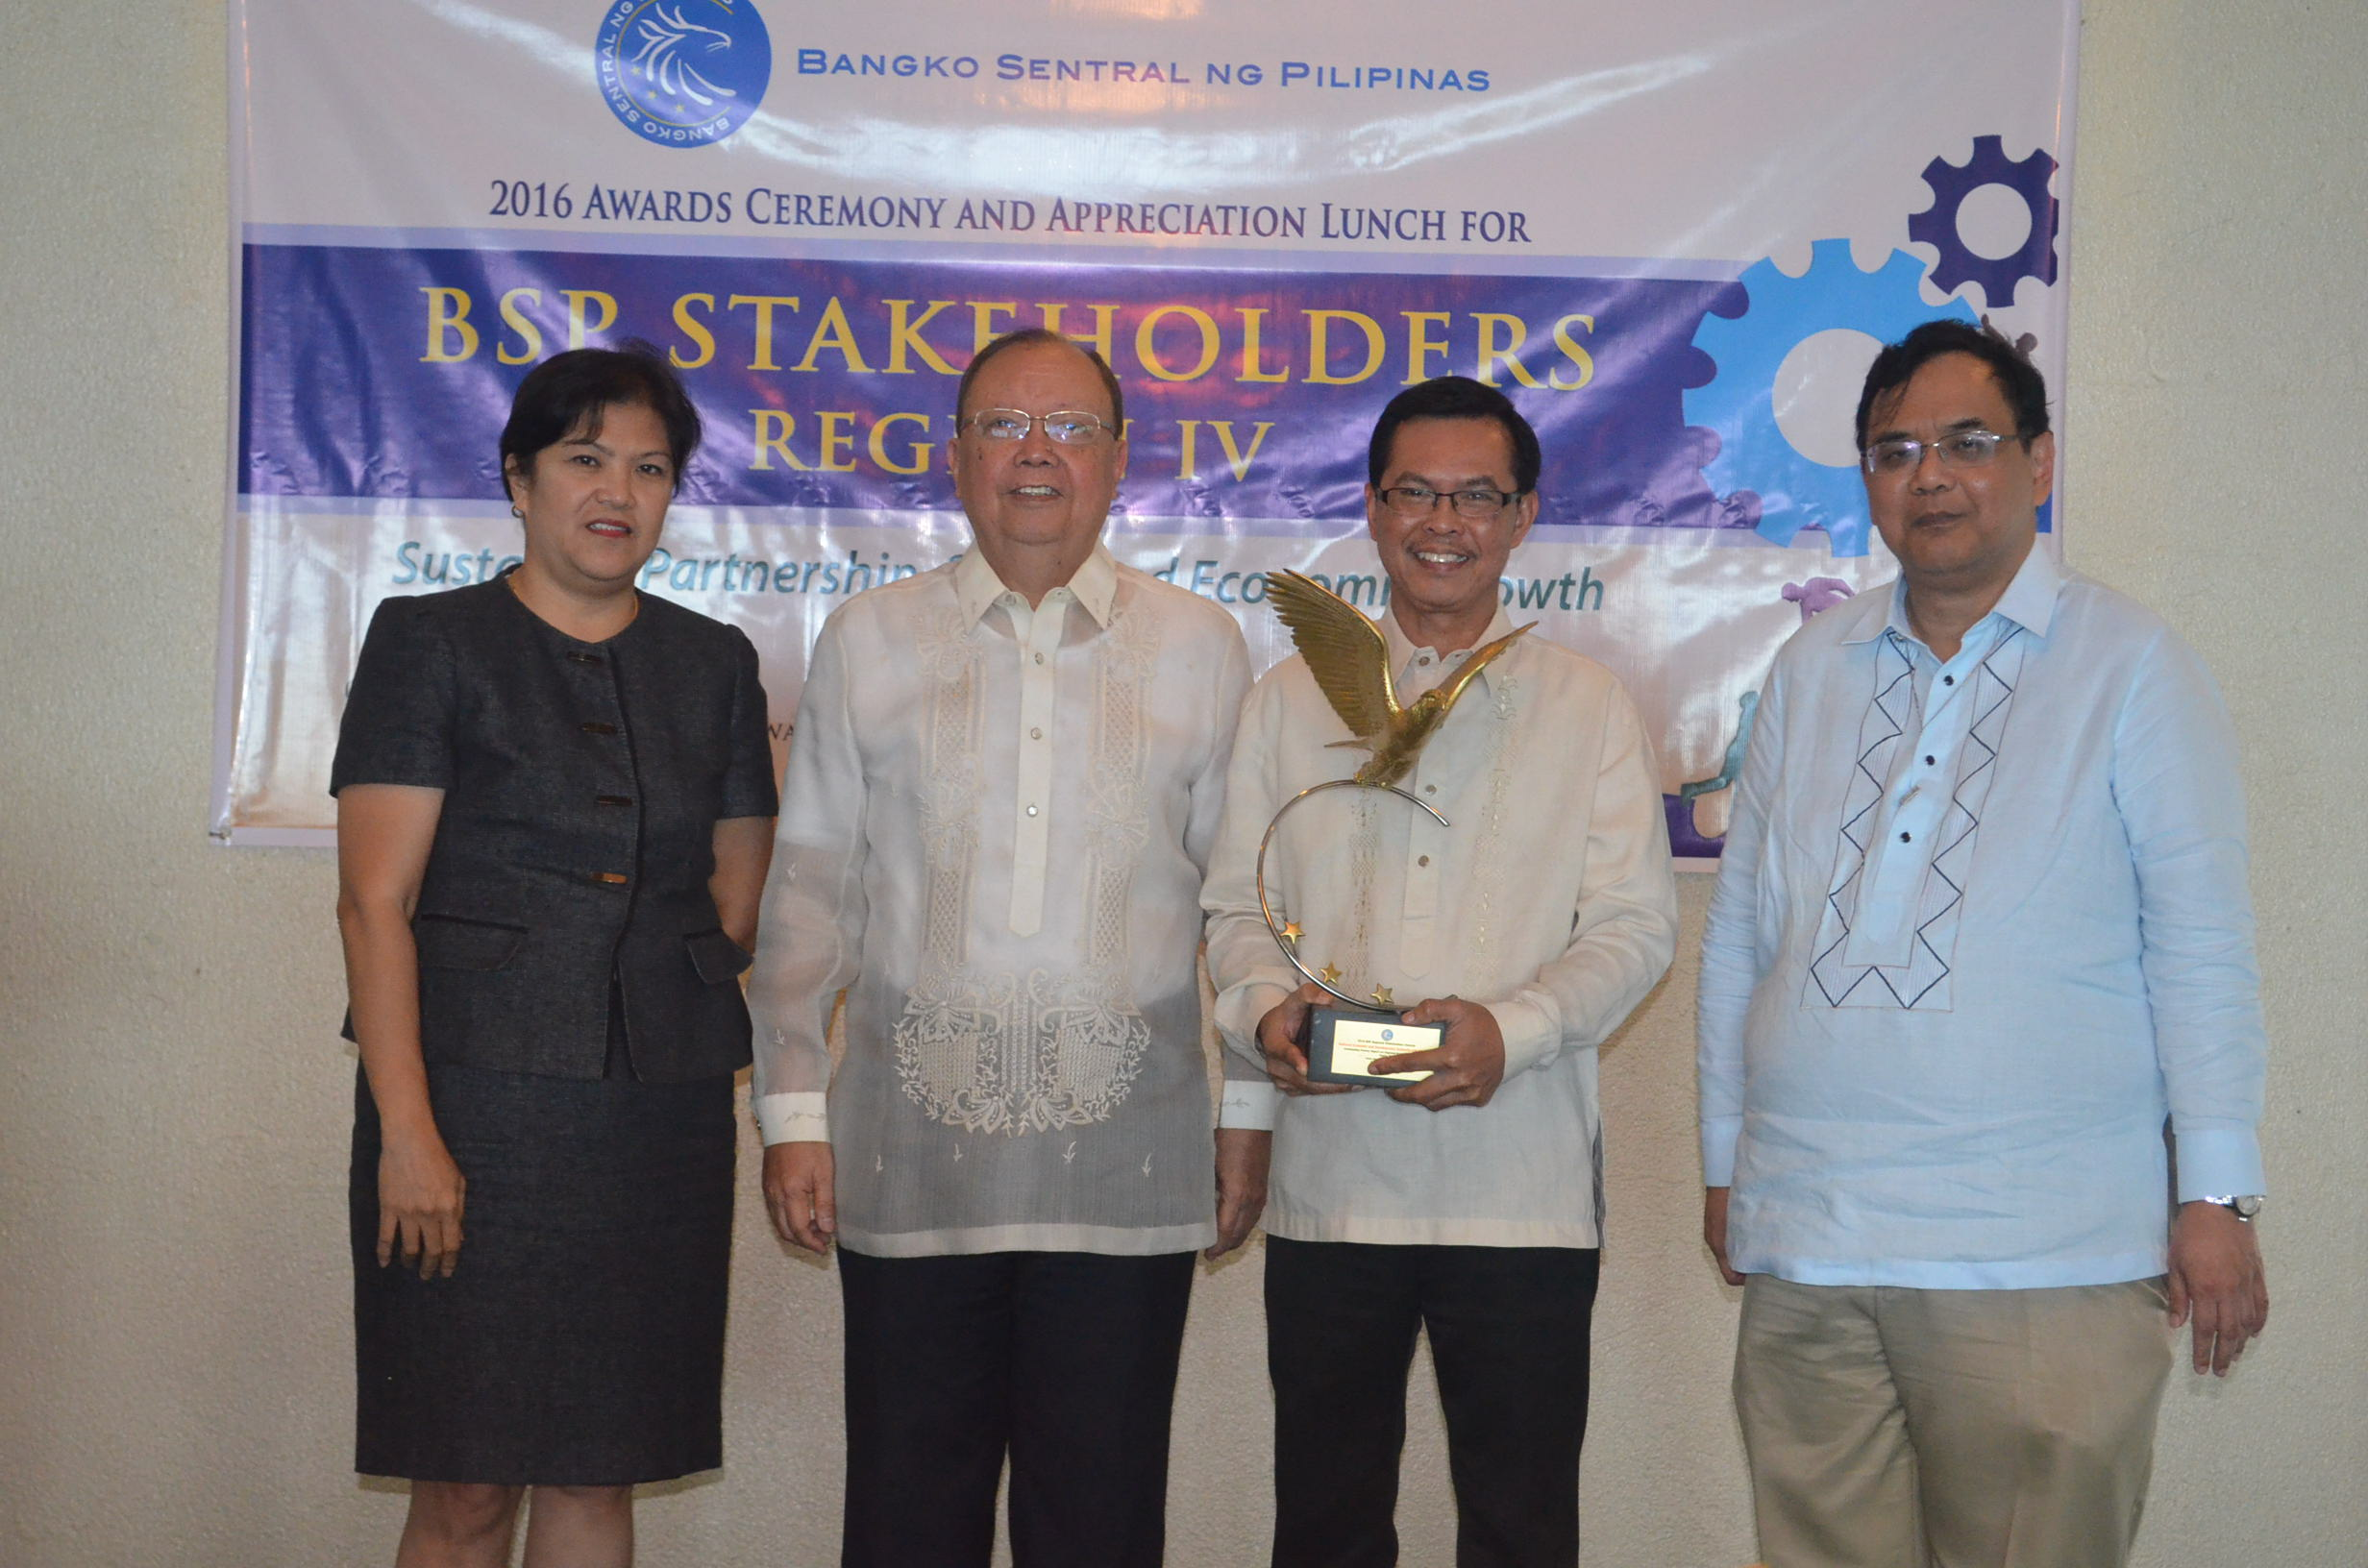 RDC Calabarzon and NEDA Region IV-A receive  Regional Outstanding Partner Awards